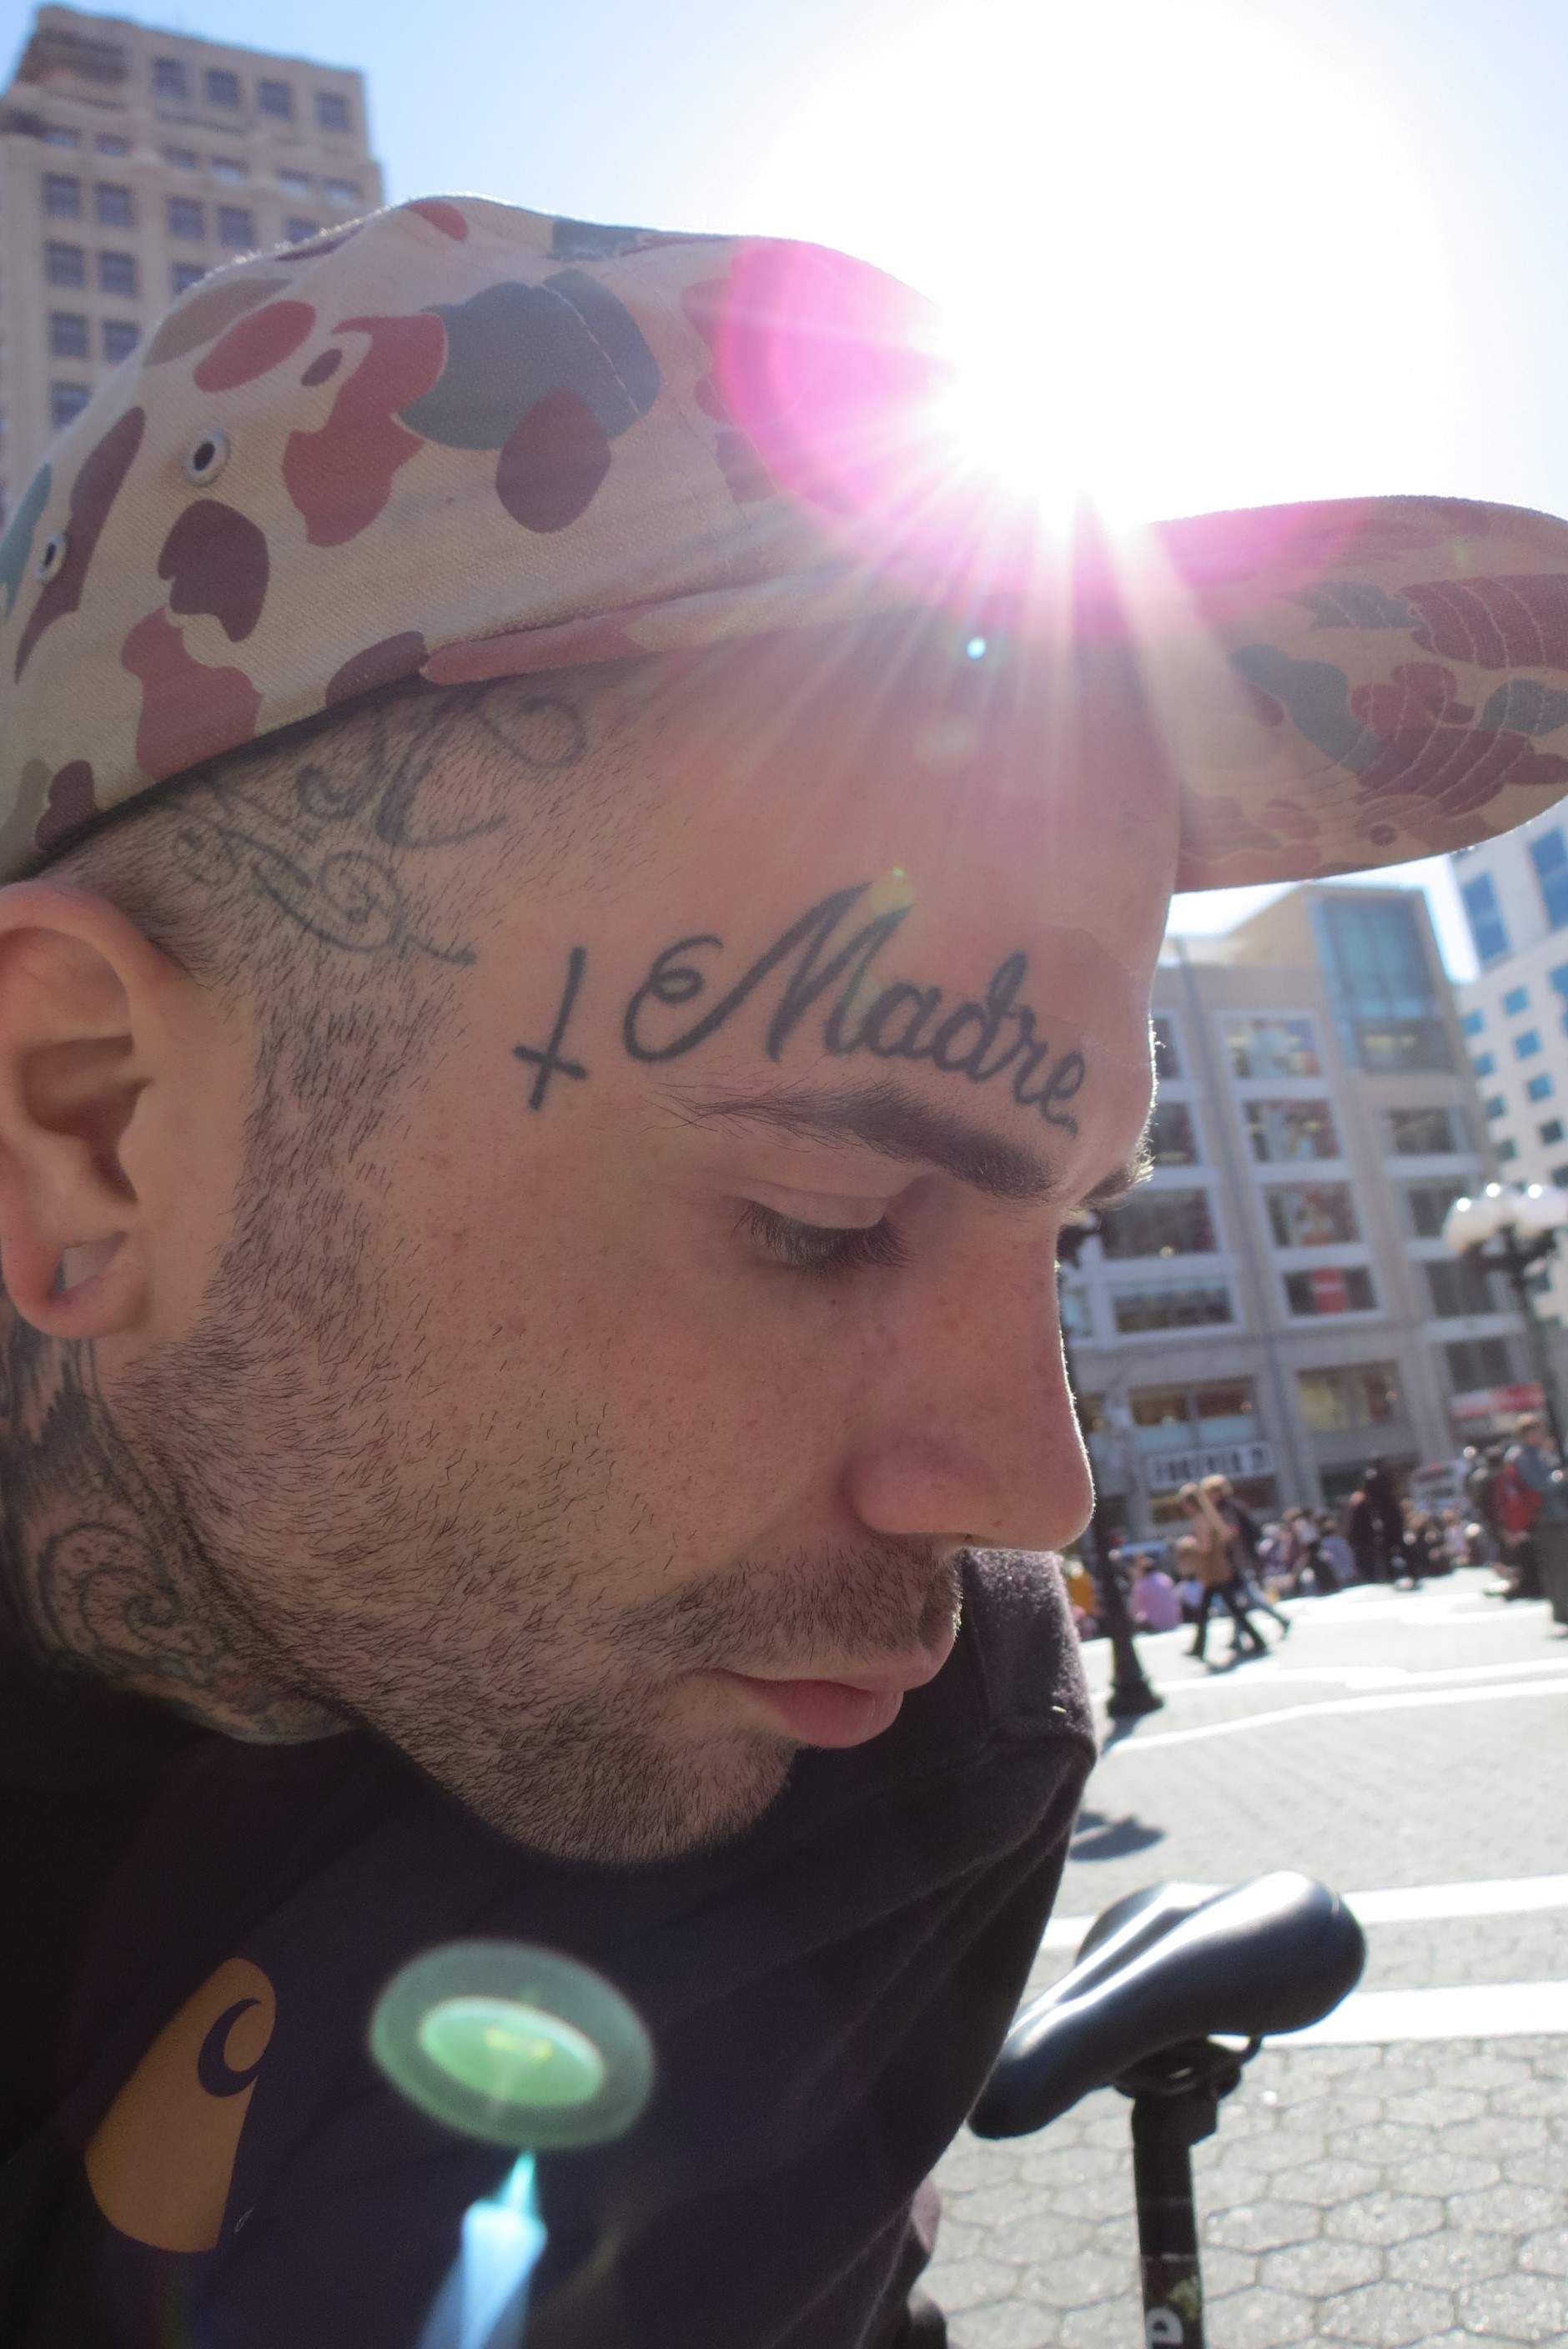 man with facial tattoos